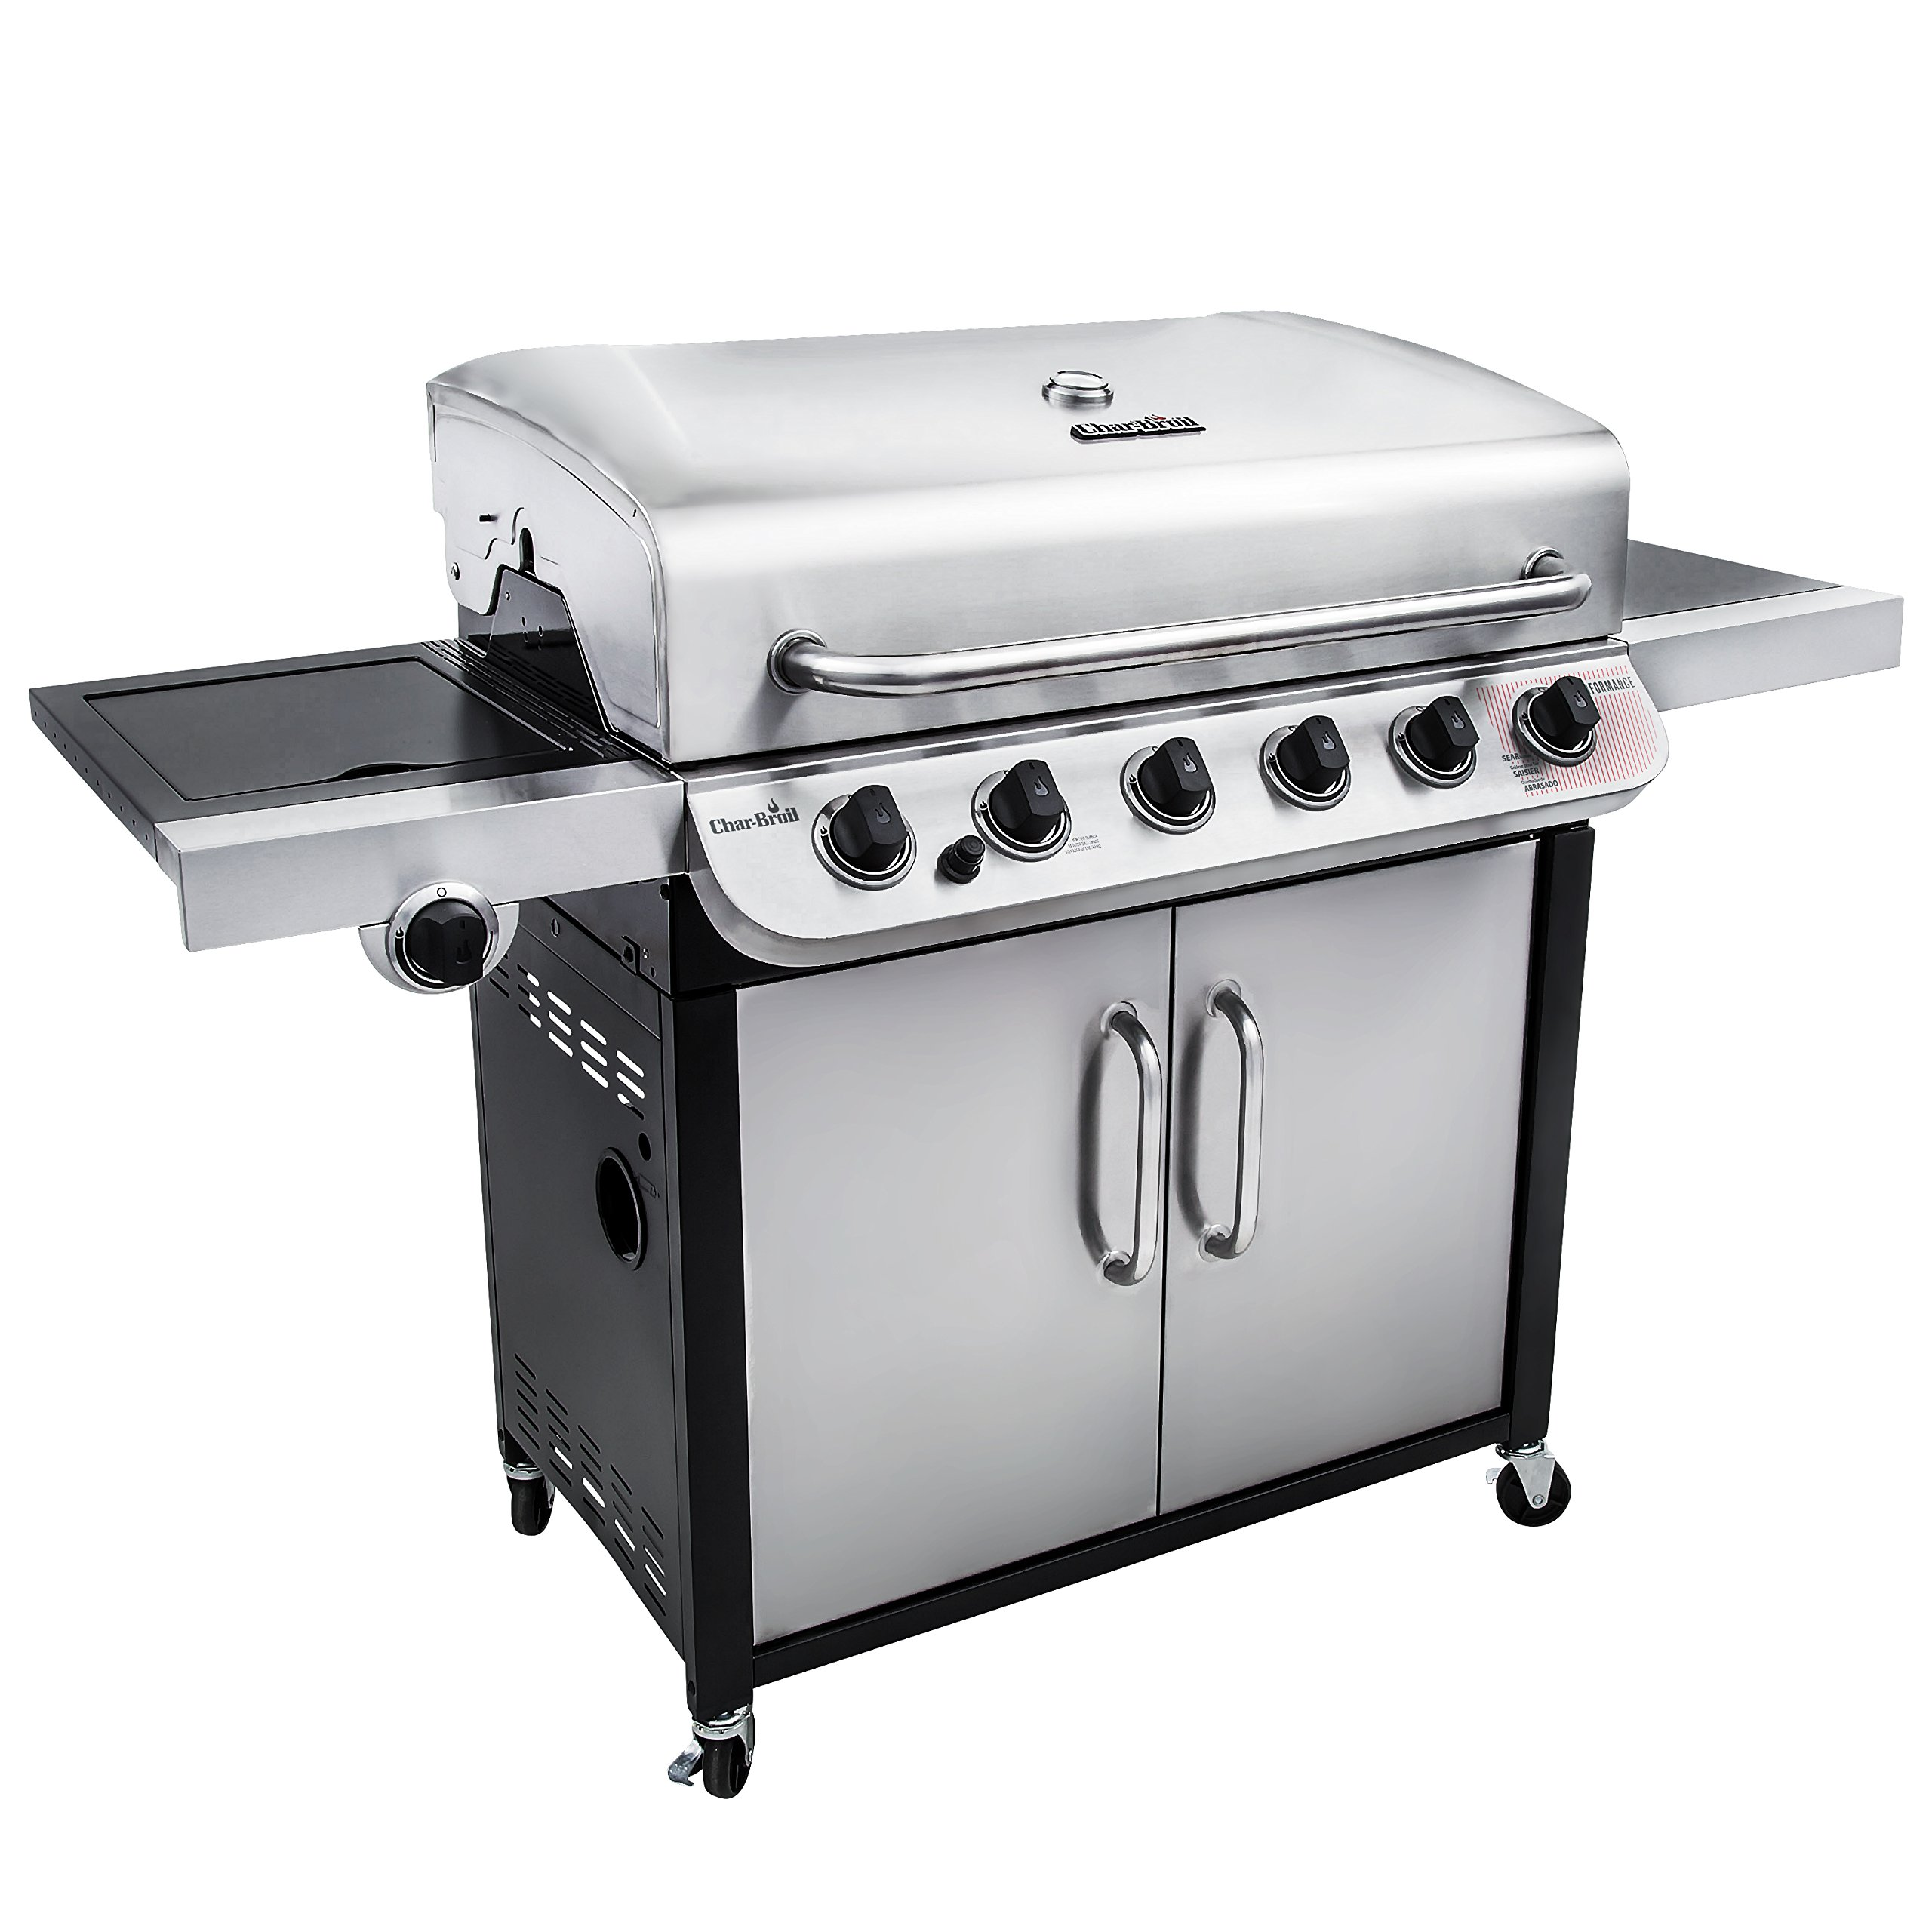 Char-Broil Performance 650 6-Burner Cabinet Gas Grill by Char-Broil